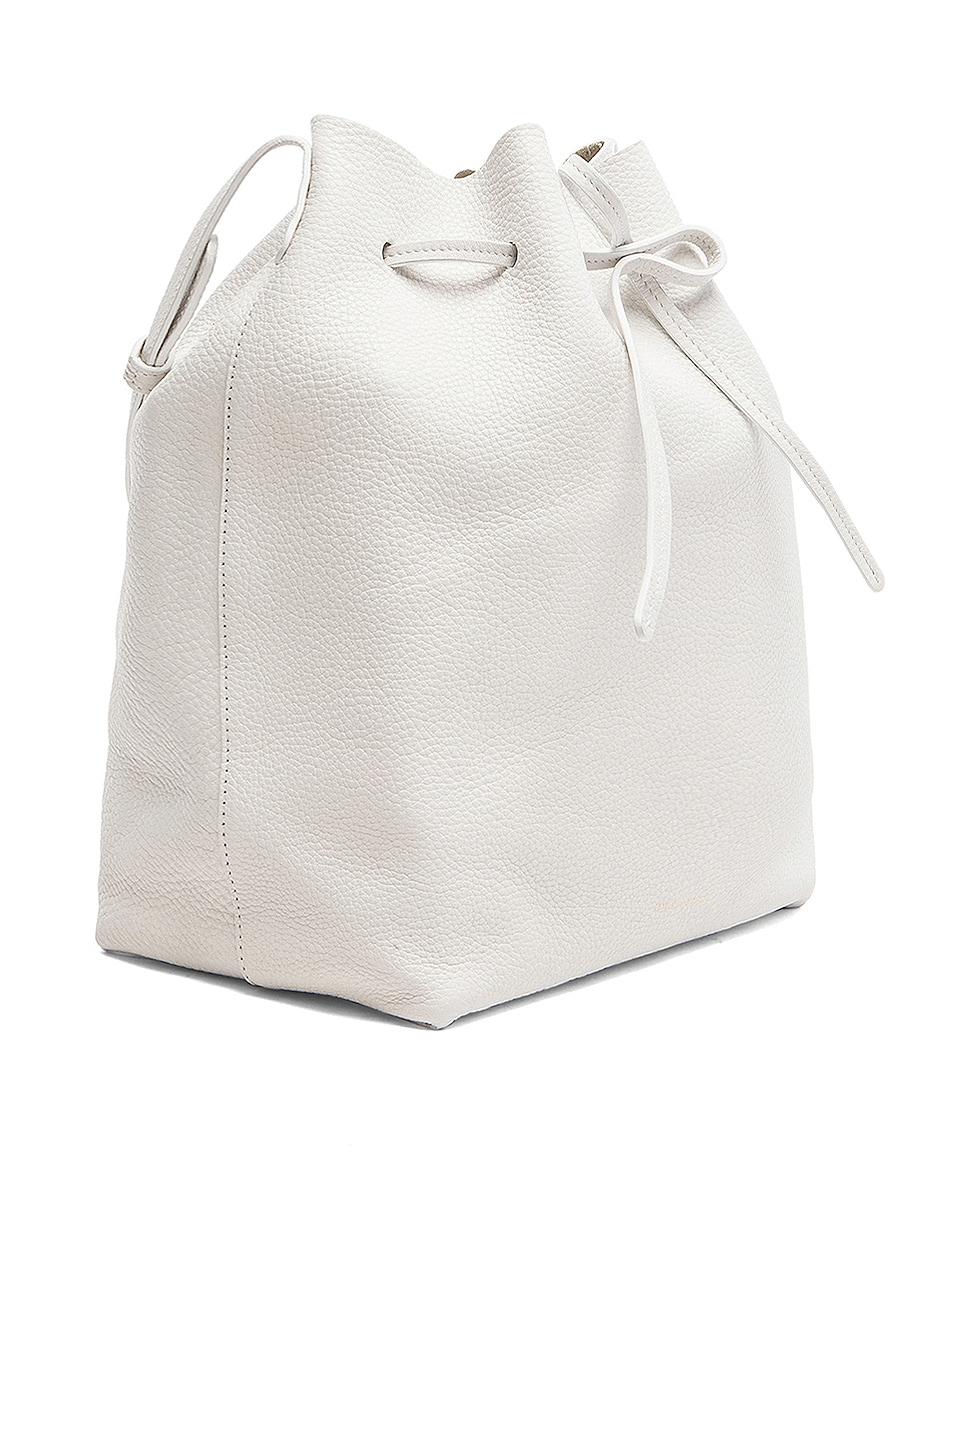 Image 4 of Mansur Gavriel Tumble Large Bucket Bag in White